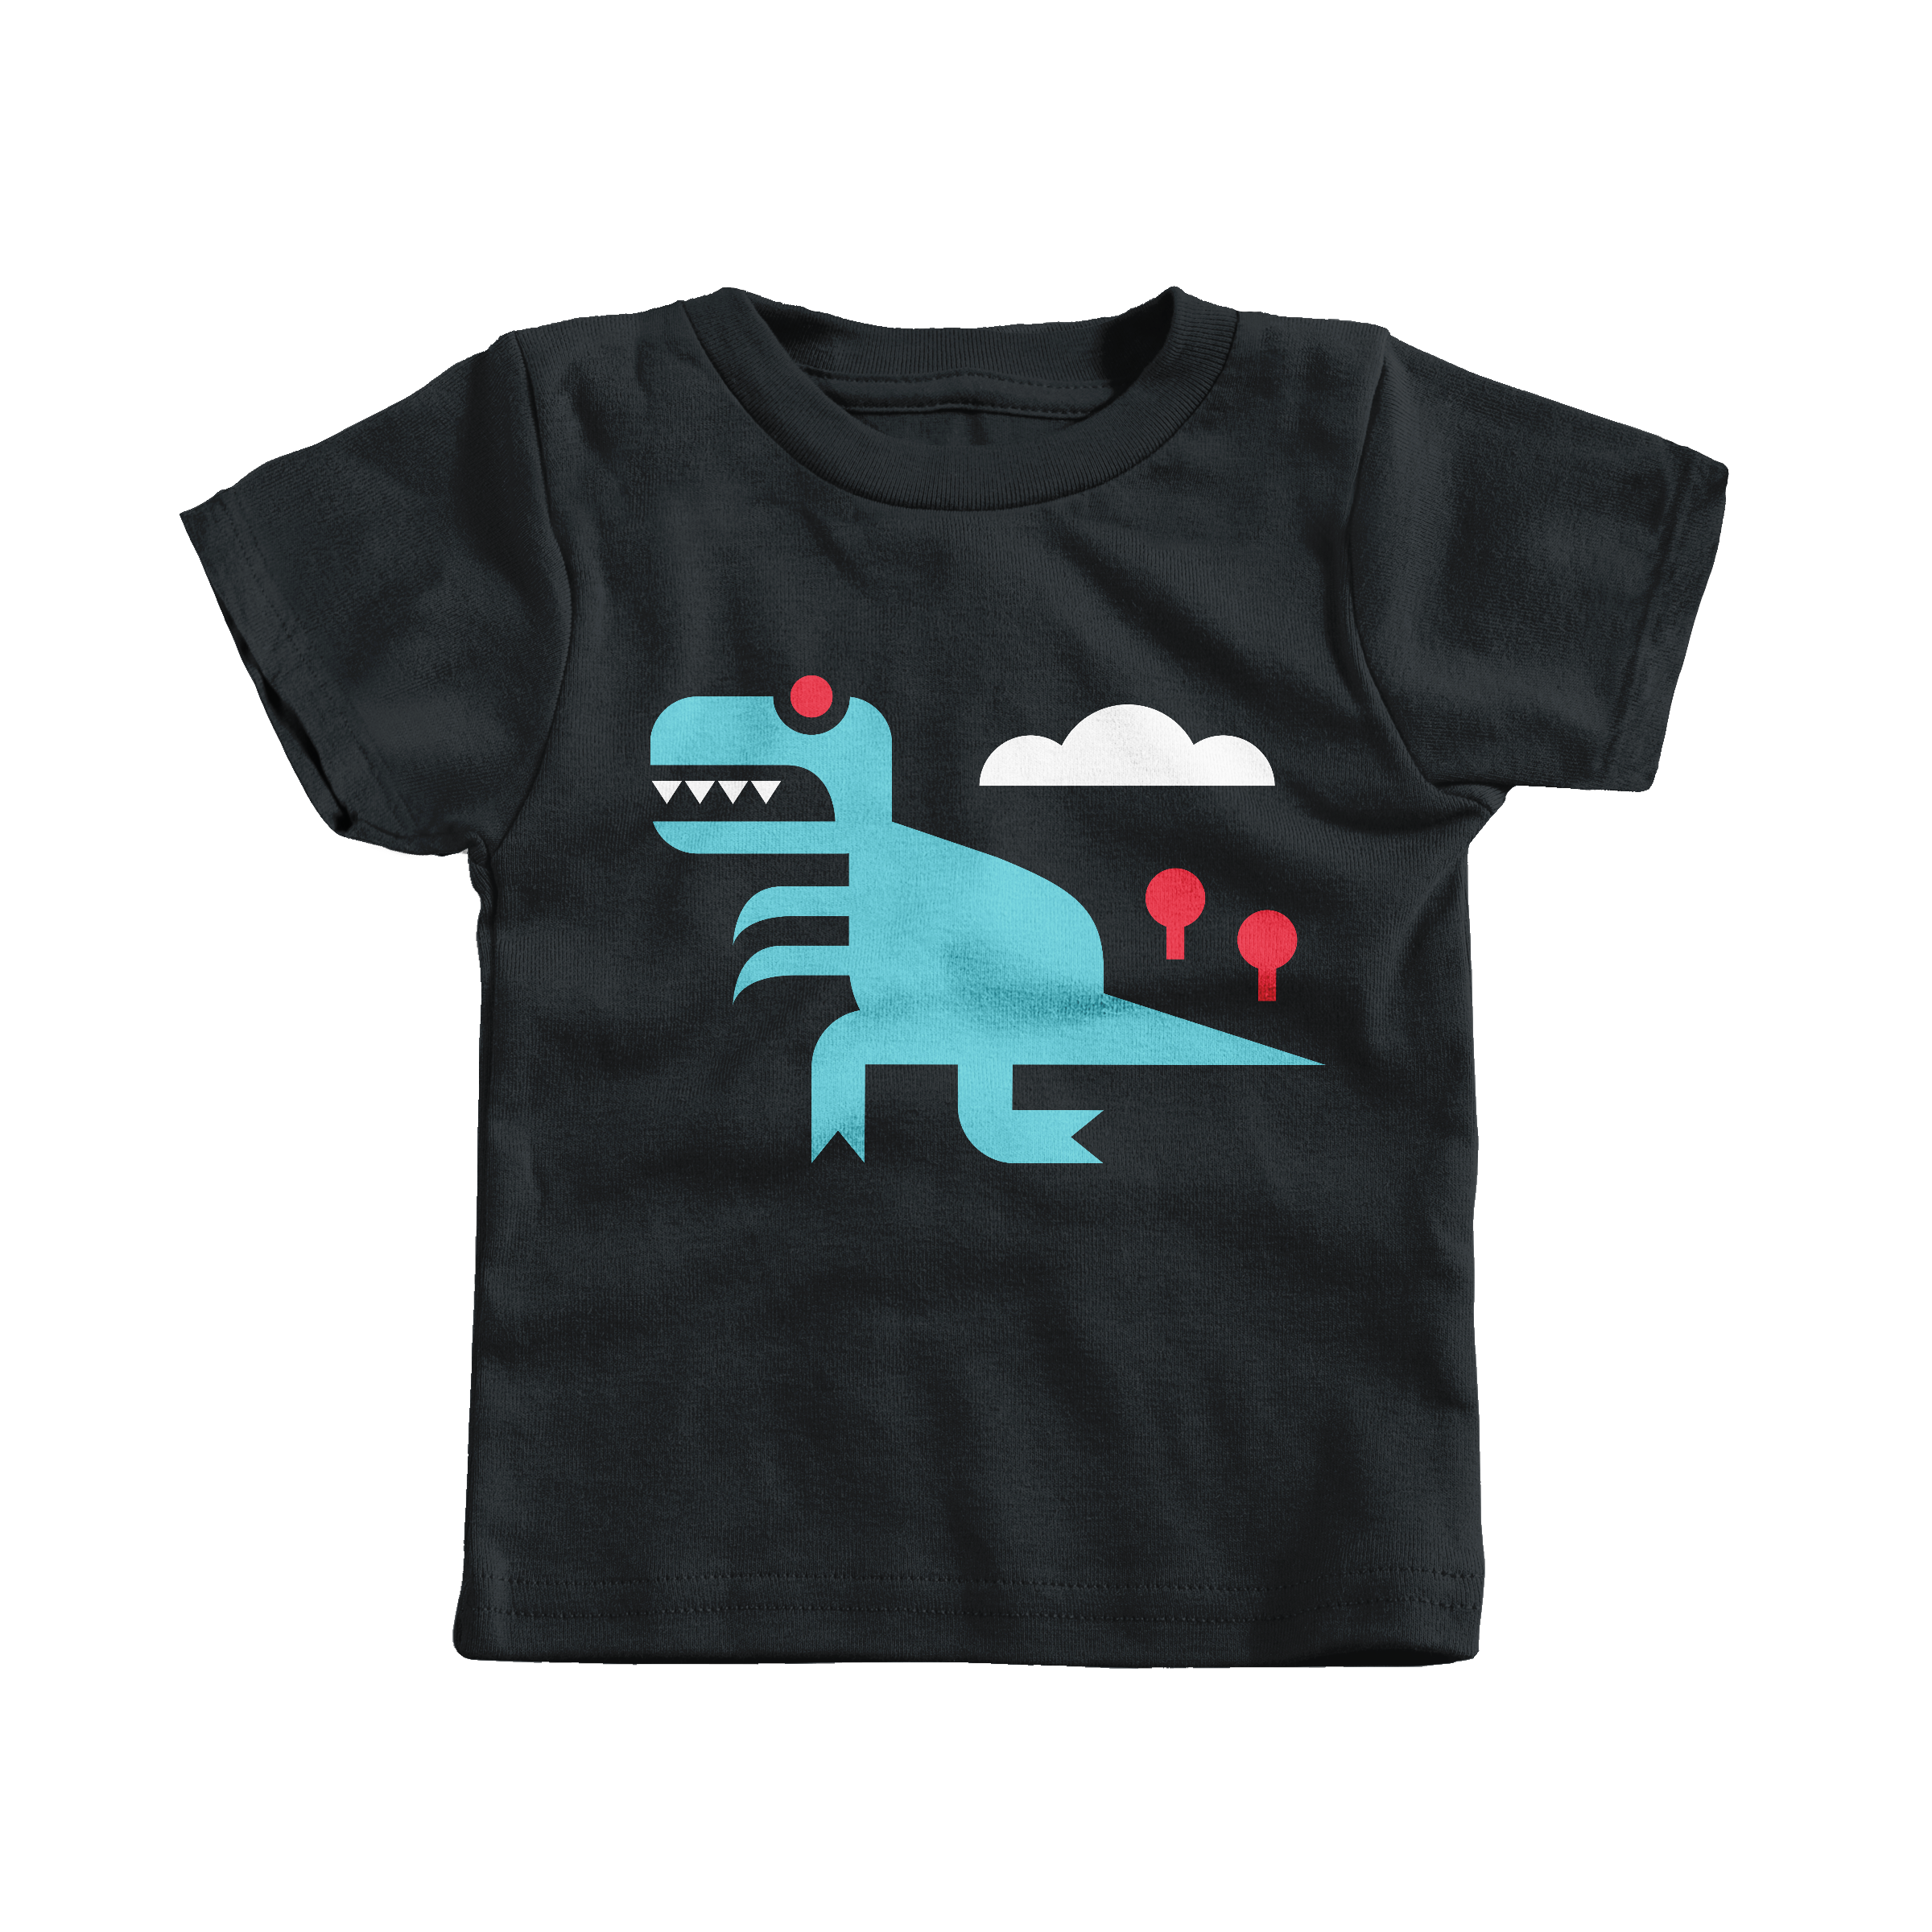 Tee Rex Black (Infant)